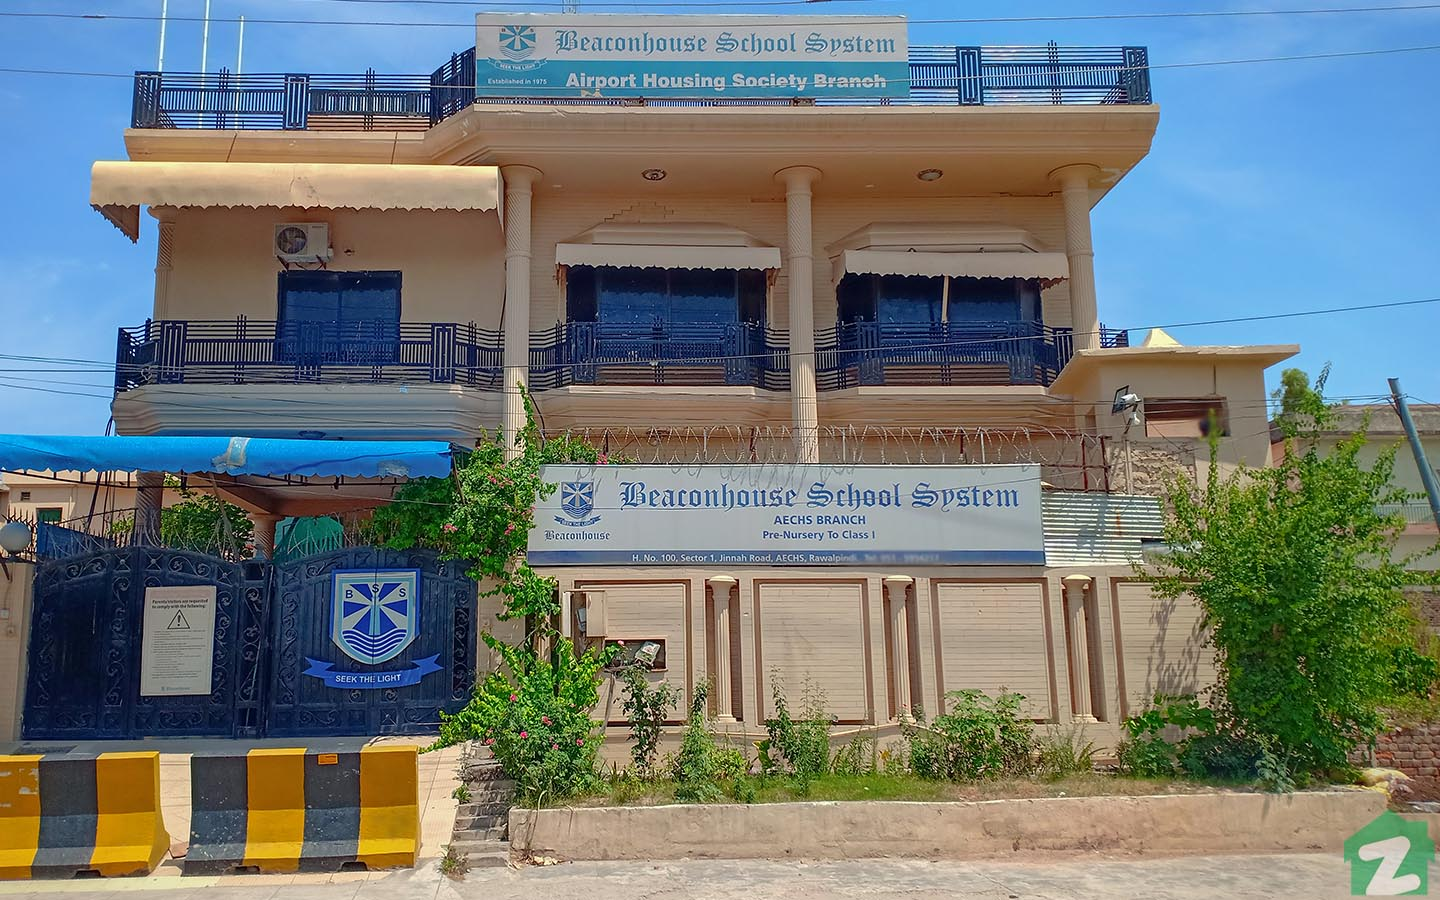 One of the renowned schools of the country, Beaconhouse School System also located in Airport Housing Society Rawalpindi